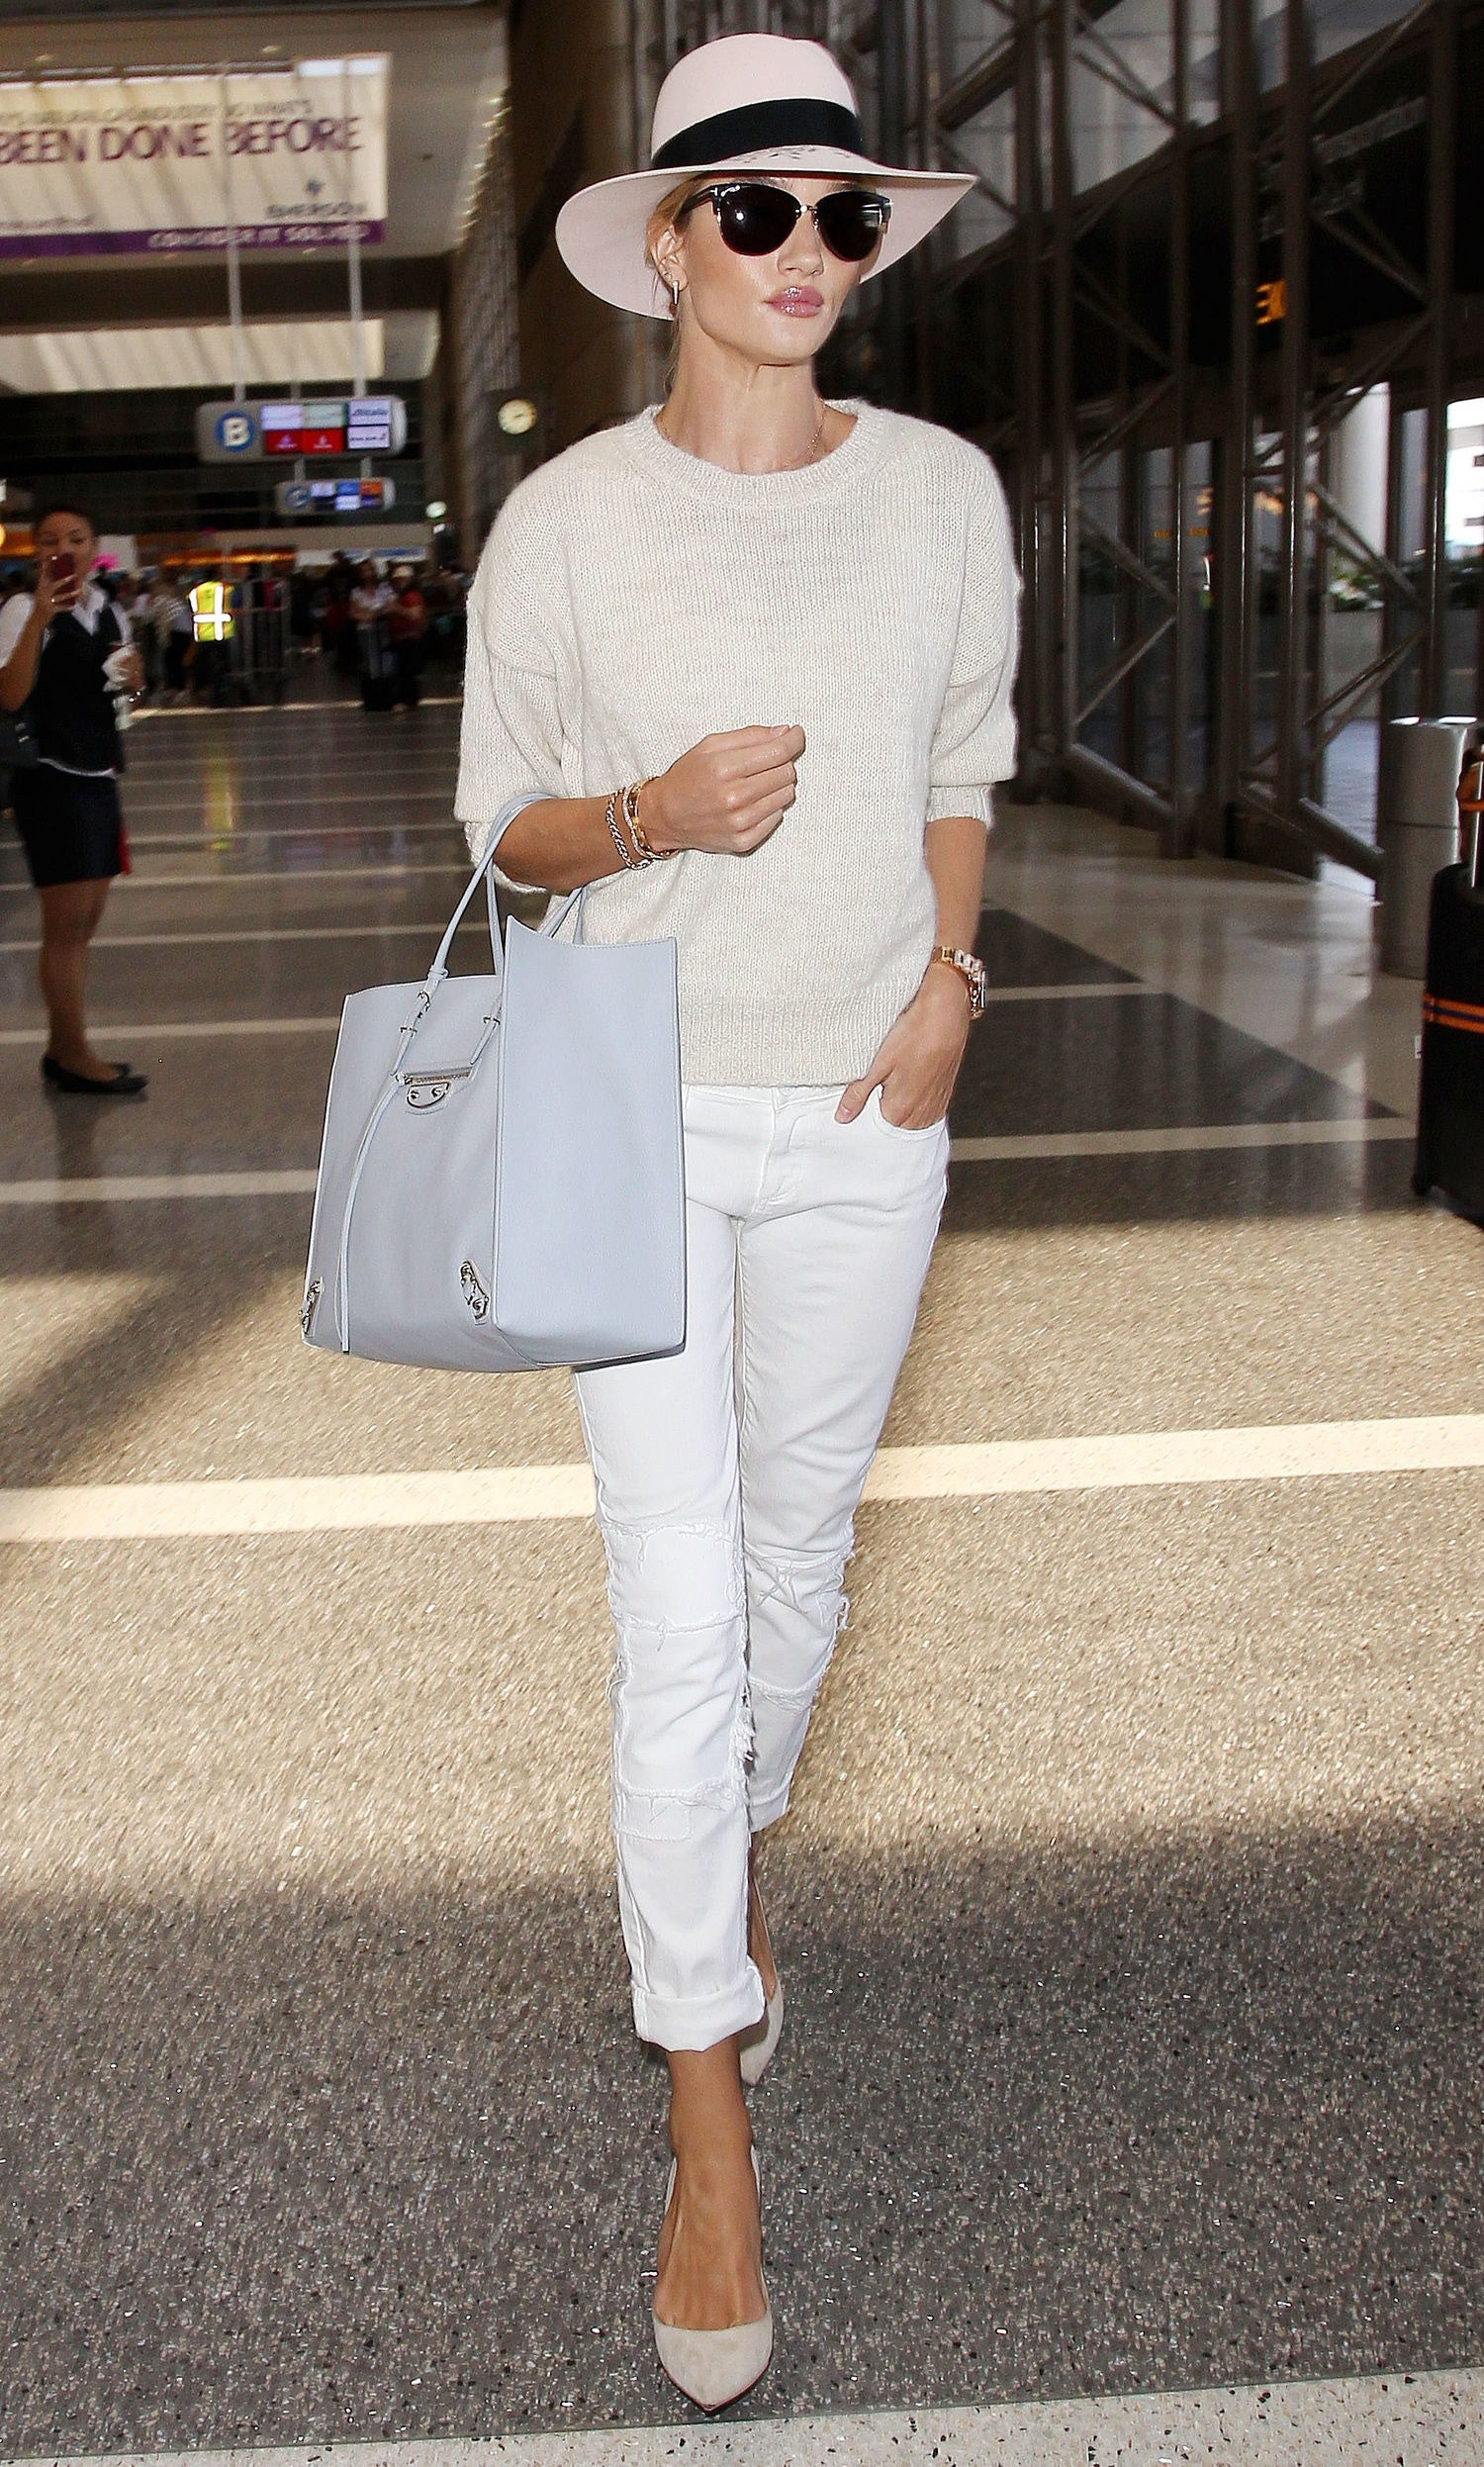 Airport outfit for women